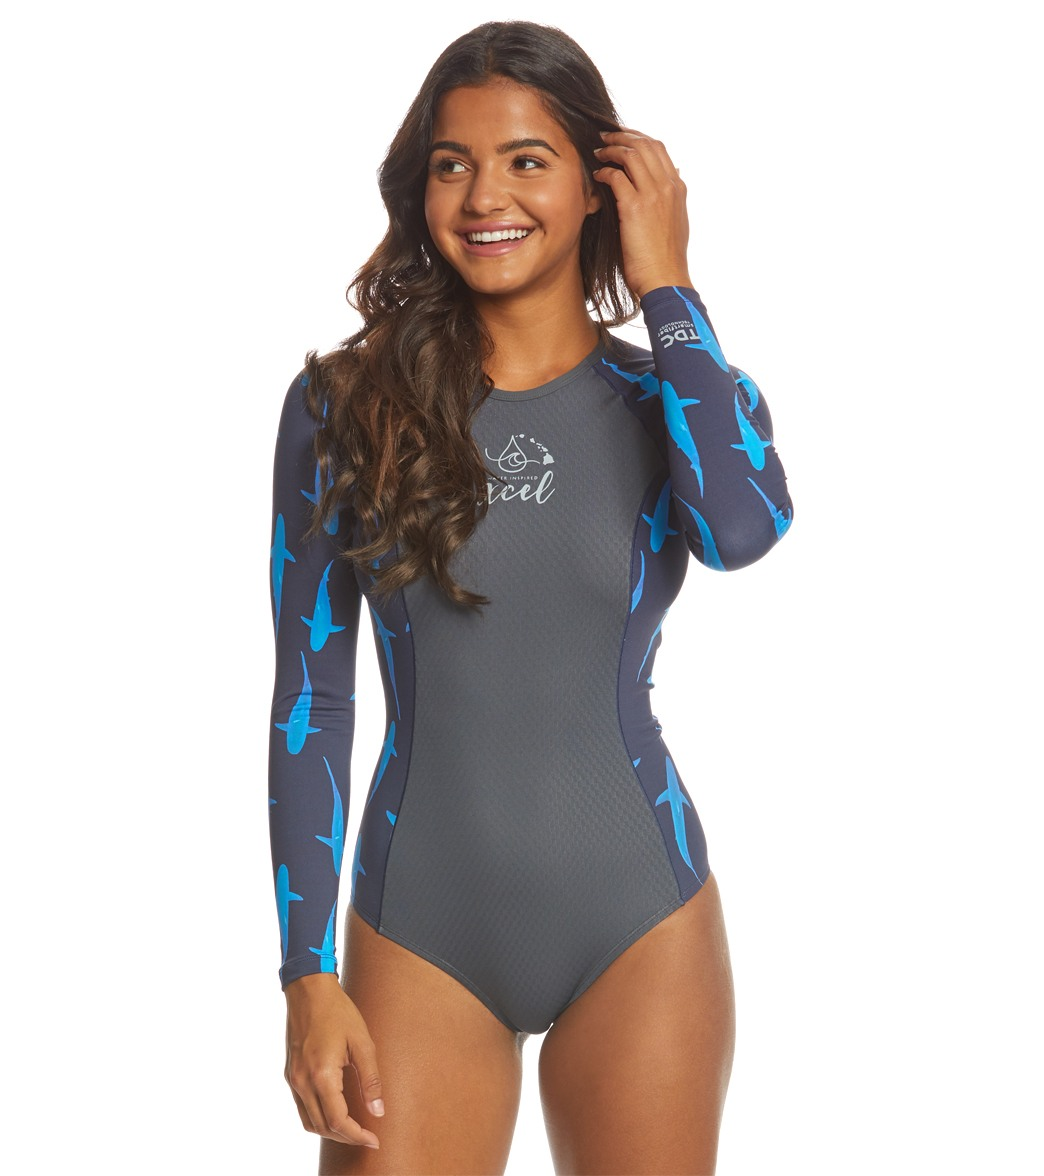 3cd1781bc8 Xcel Women s Ocean Ramsey Drylock Ceilliant Jaquard Long Sleeve Back Zip Spring  Suit at SwimOutlet.com - Free Shipping